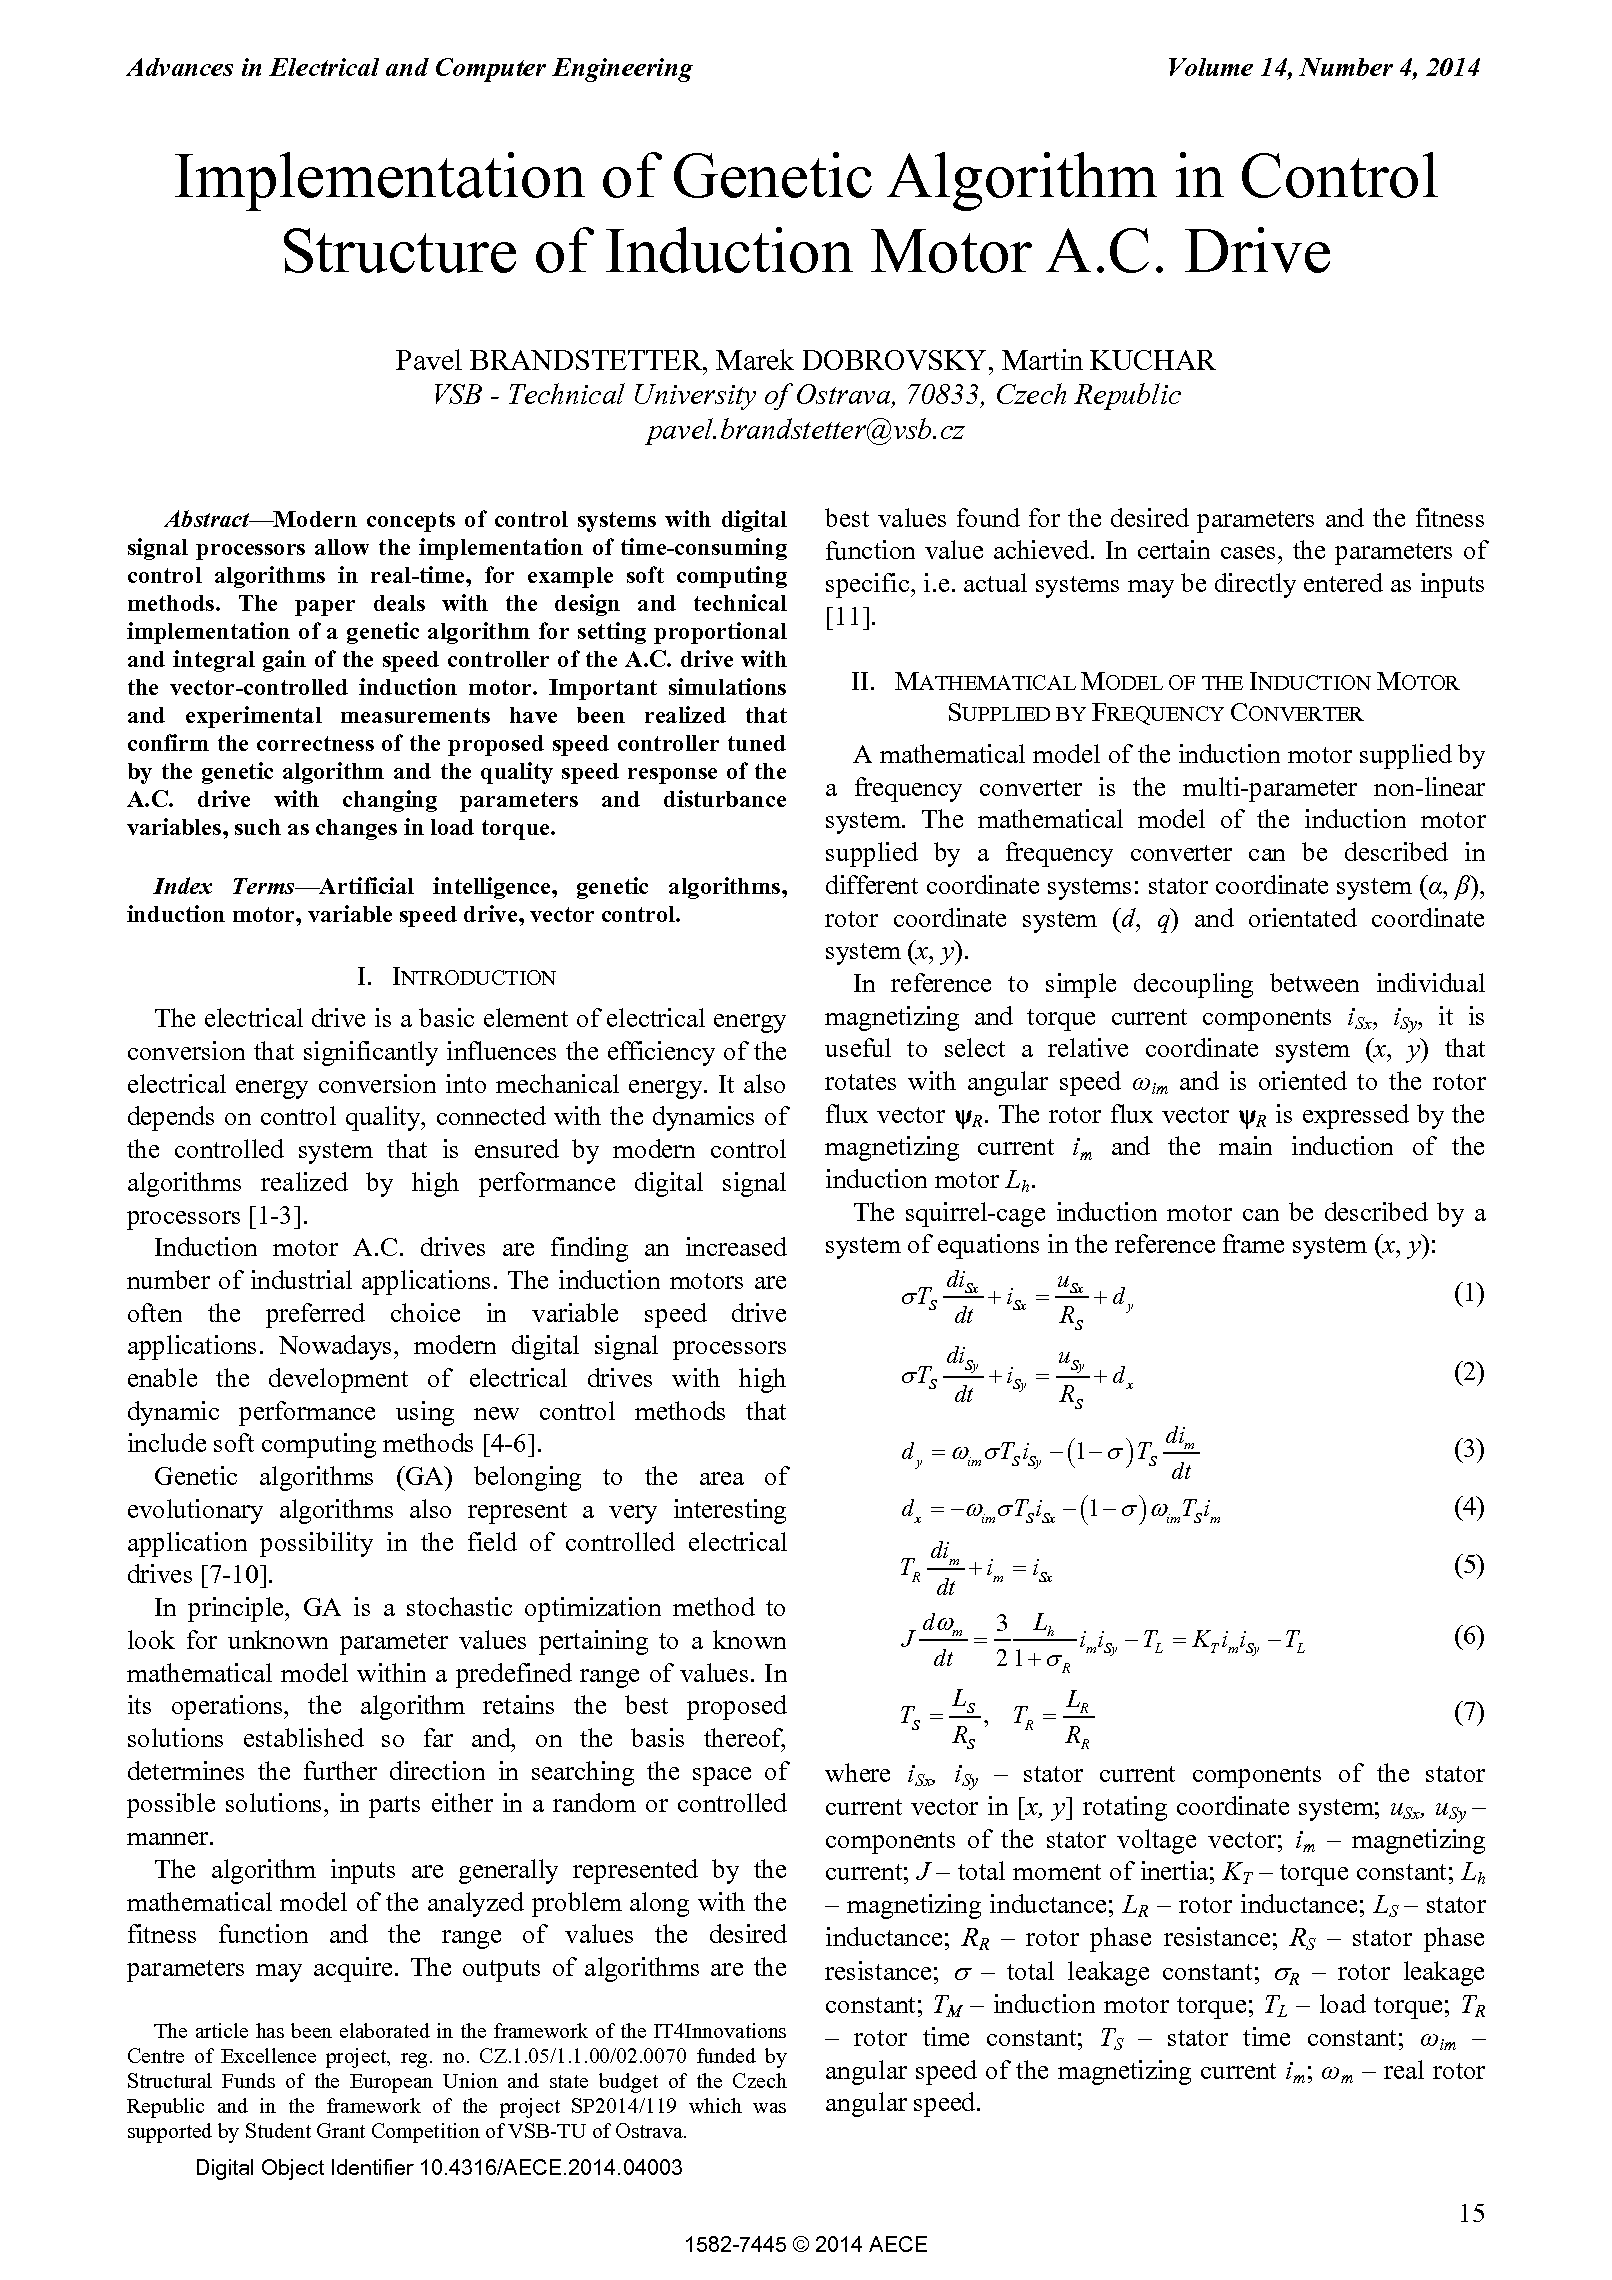 PDF Quickview for paper with DOI:10.4316/AECE.2014.04003